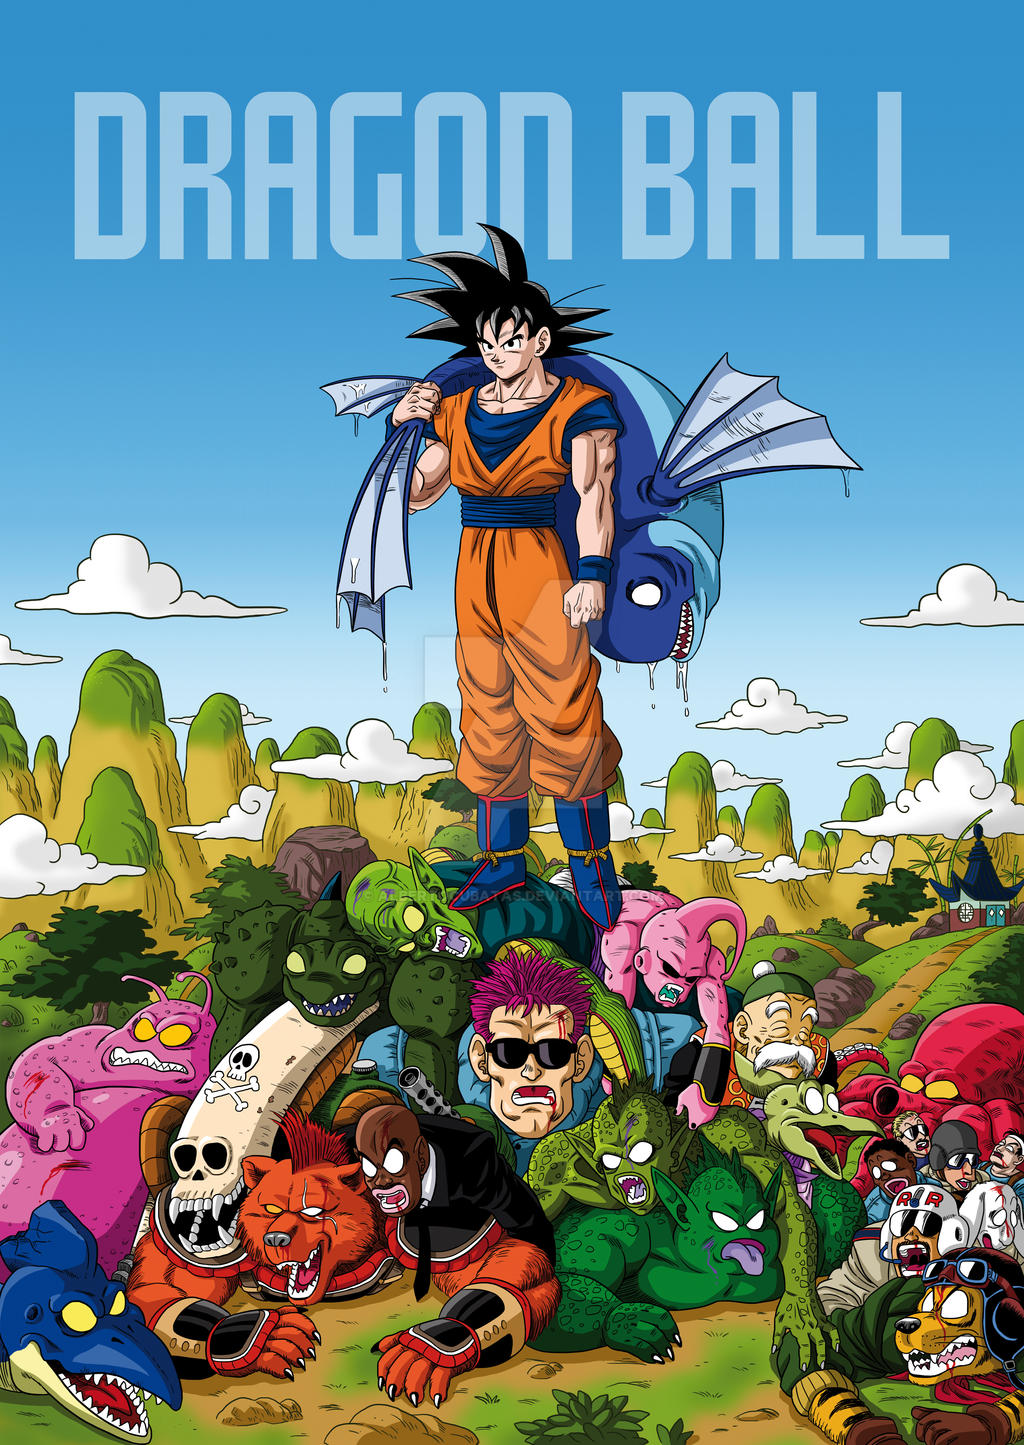 Dragon Ball Z Anime Characters Database : Goku facts you need to know page of otakukart